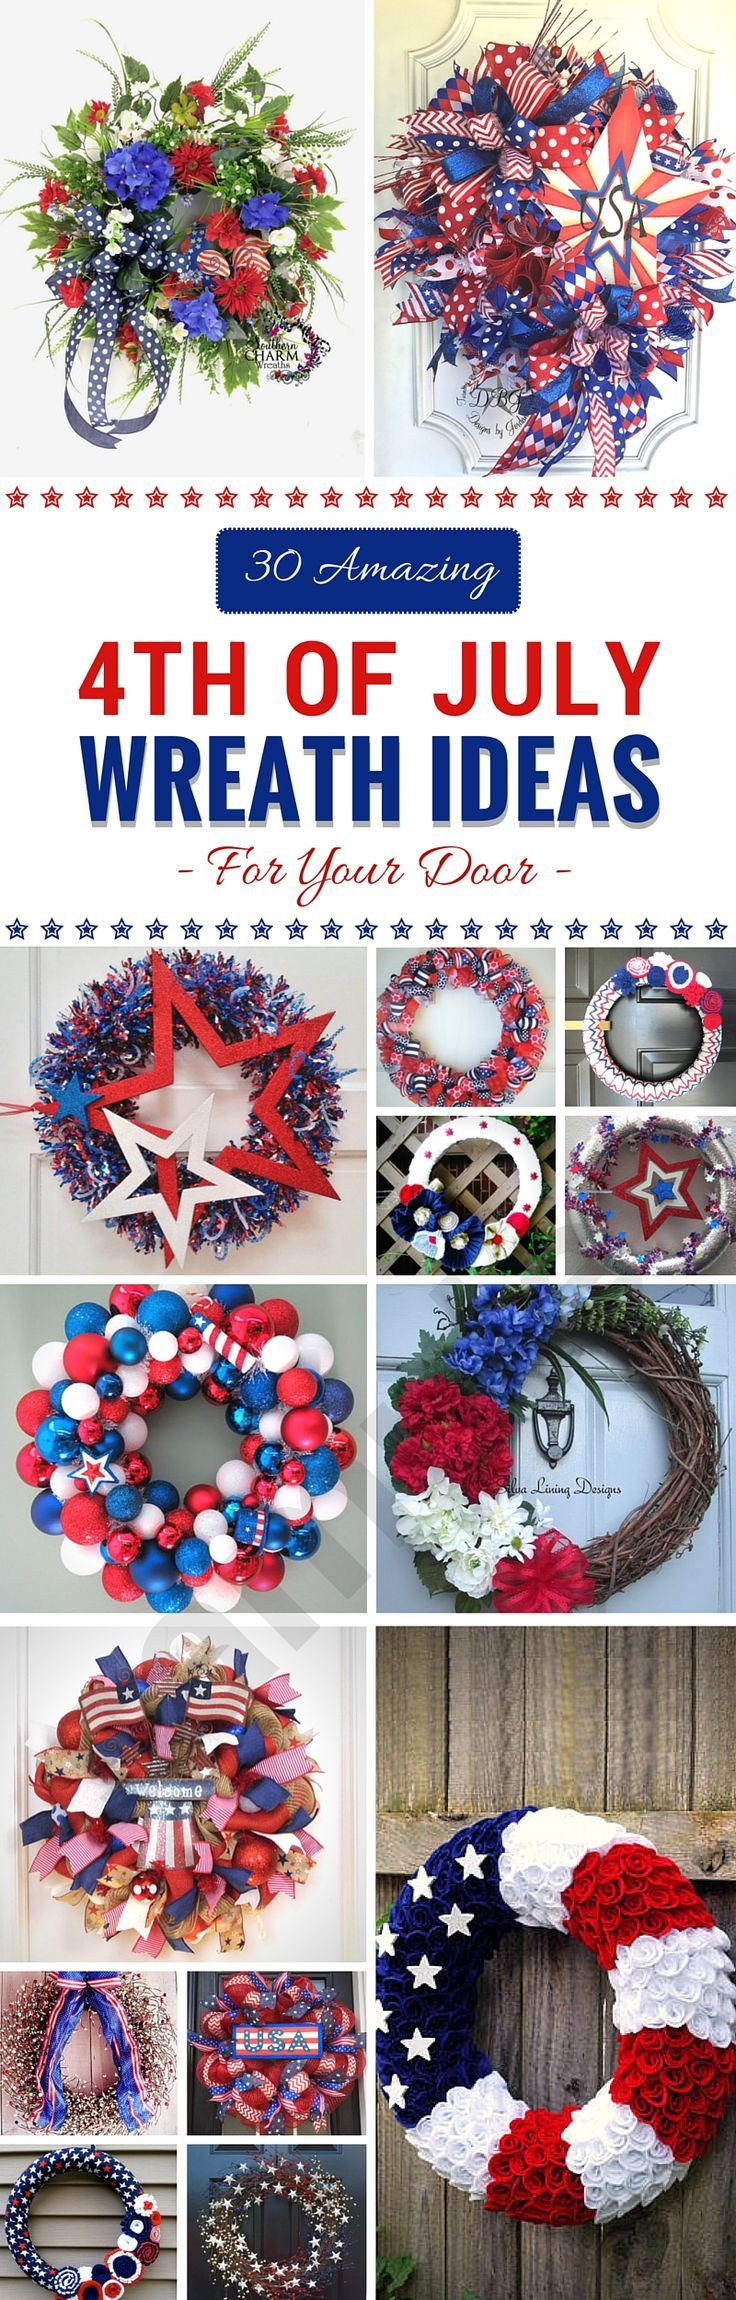 25 best summer door wreaths ideas on pinterest diy wreath 30 amazing 4th of july wreath ideas for your door